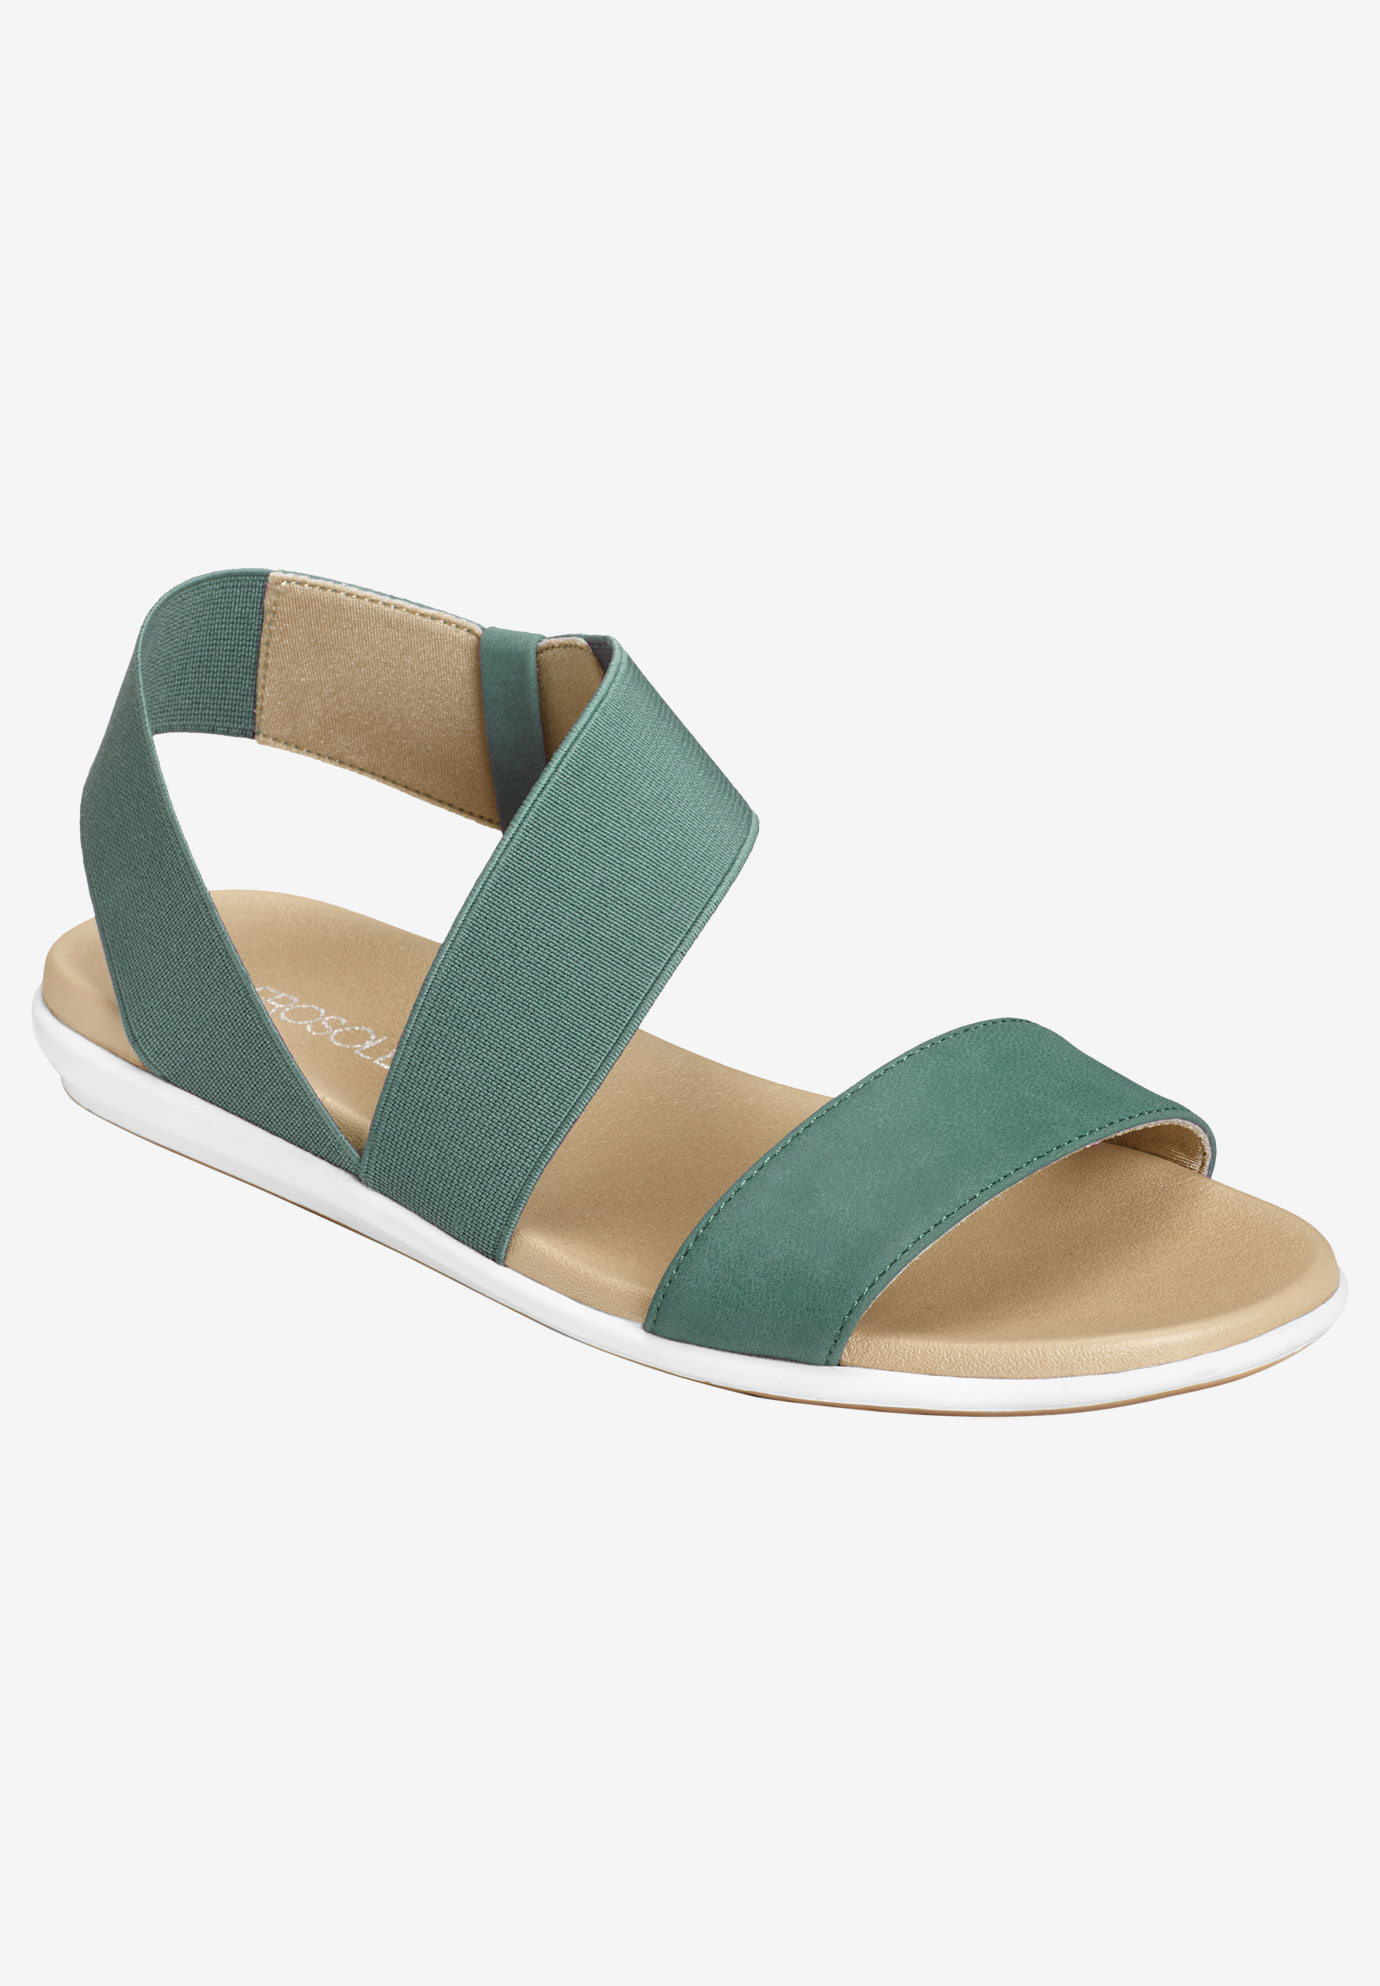 Watch Box Sandal by Aerosoles®,